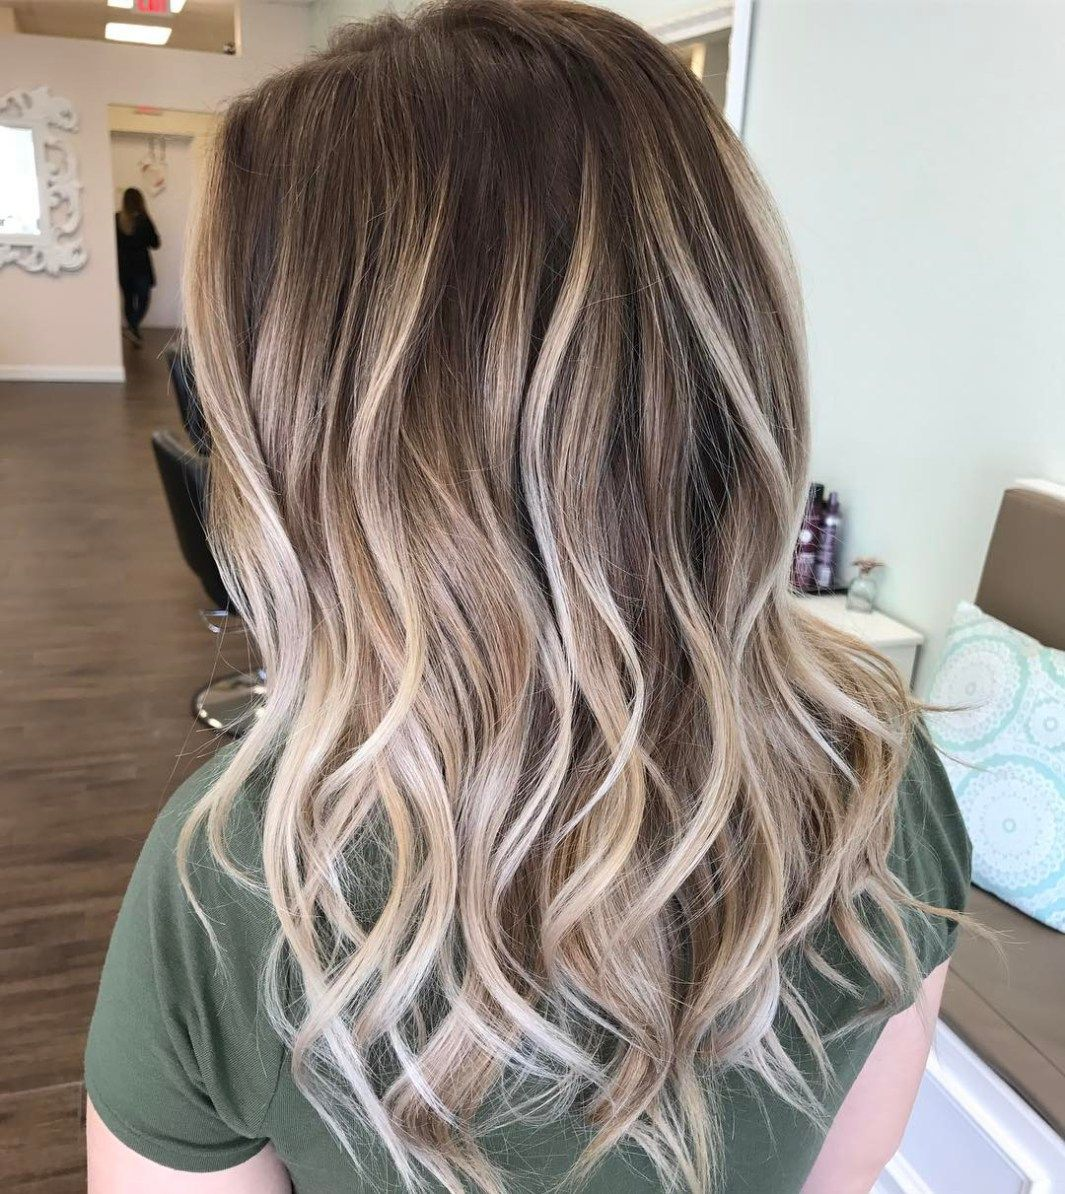 Highlights Blond 70 Flattering Balayage Hair Color Ideas For 2019 Hair